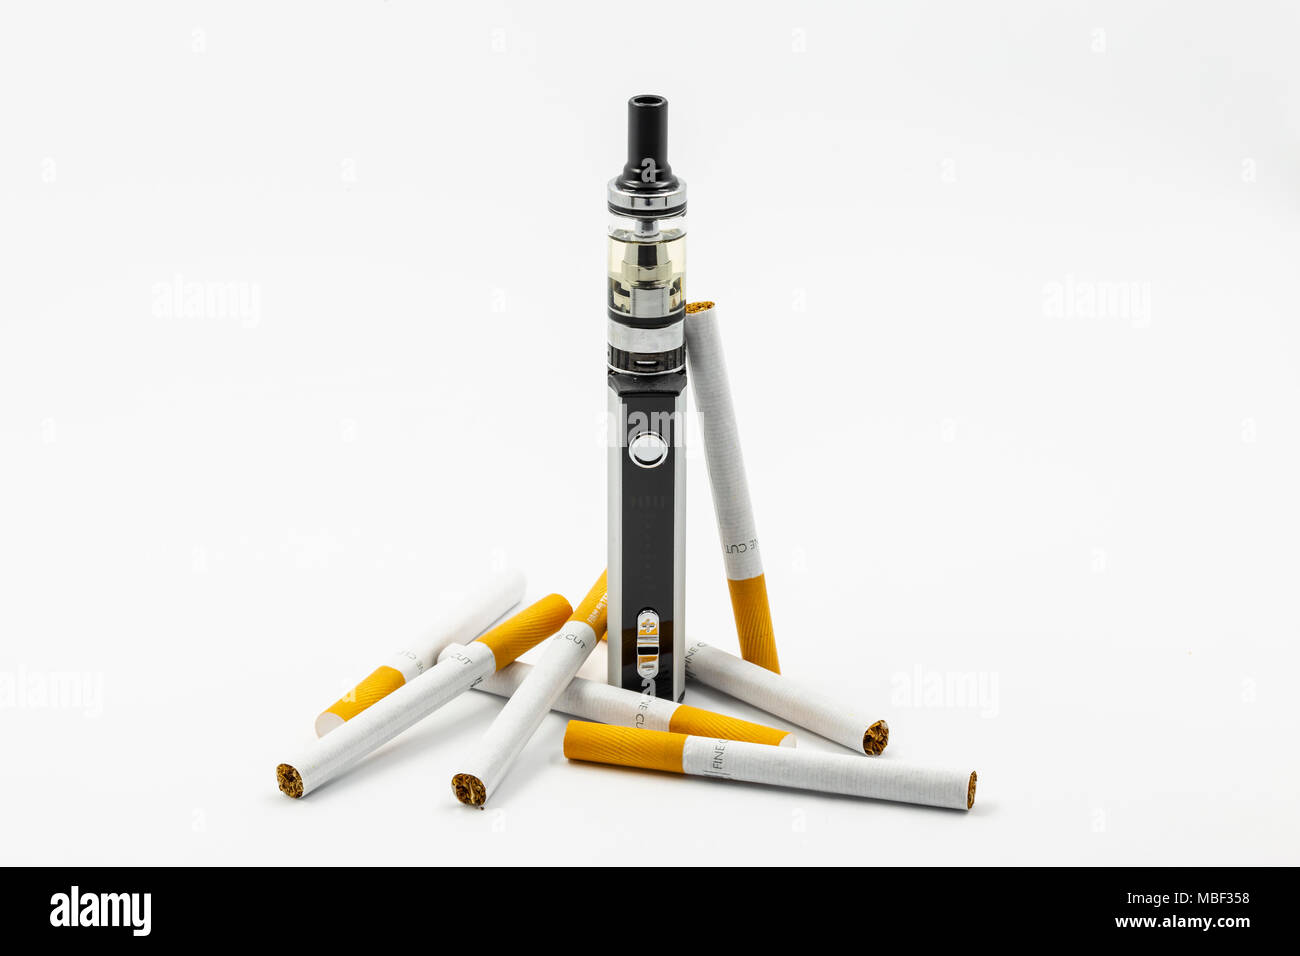 Conventiuonal and electronic cigarettes - Stock Image